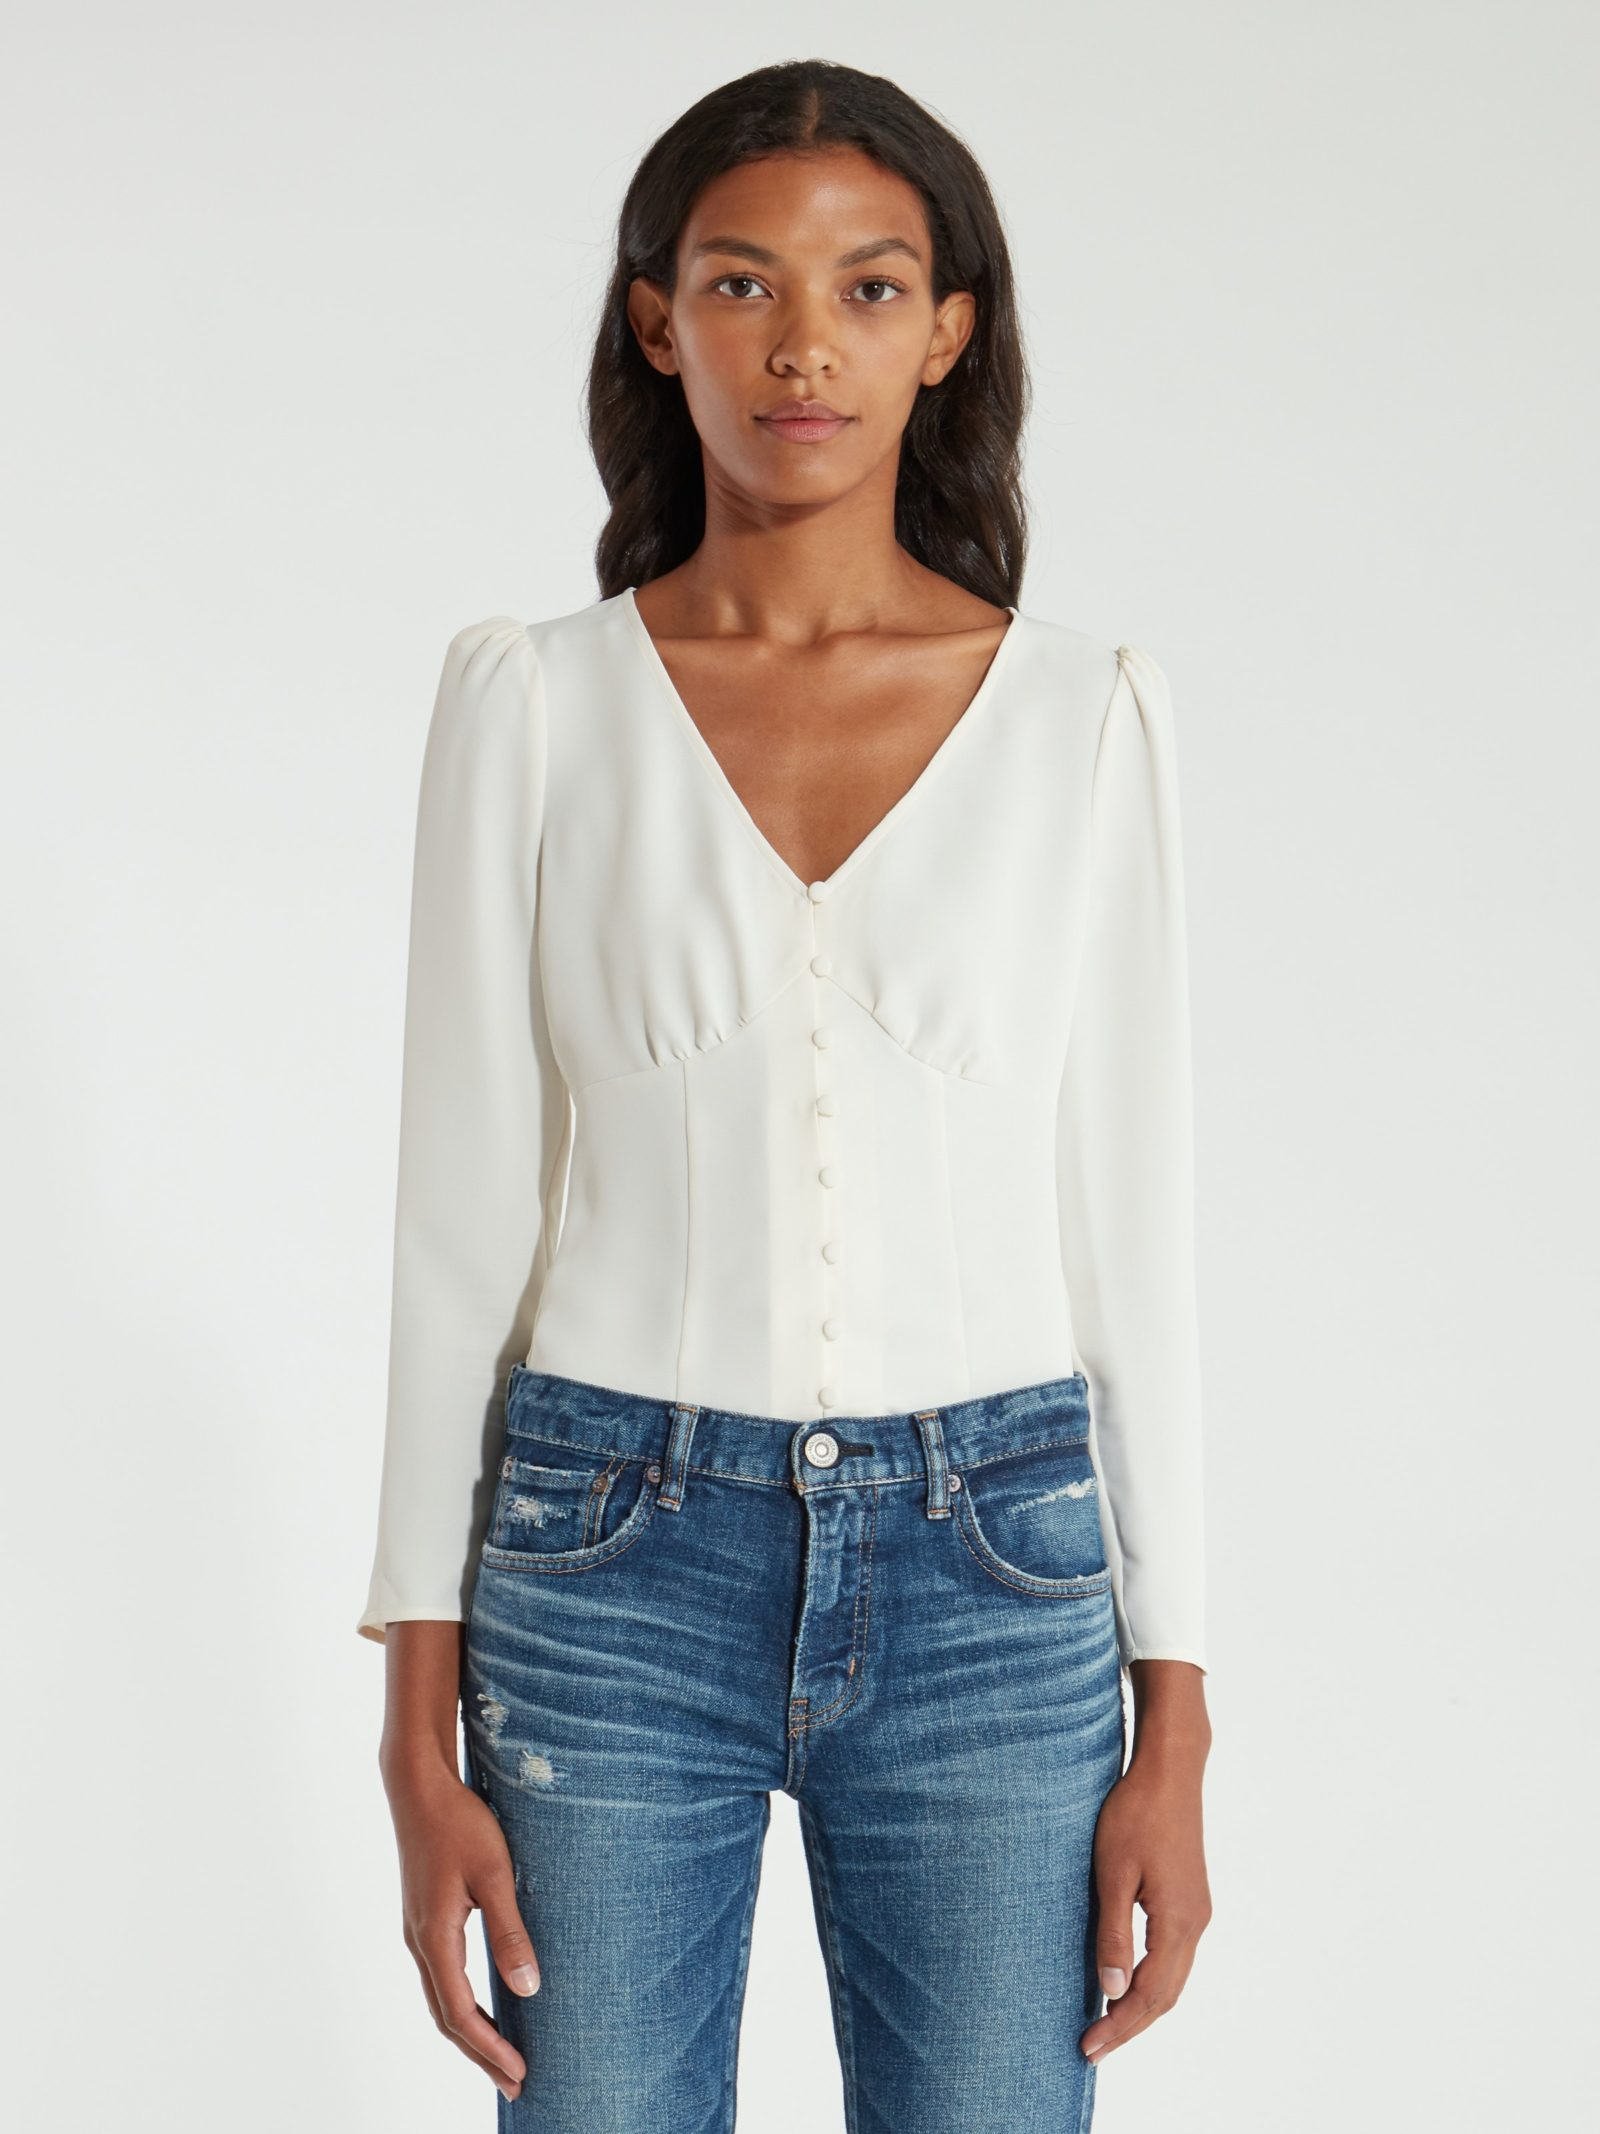 Verishop's Up To 80% Off Sale white top